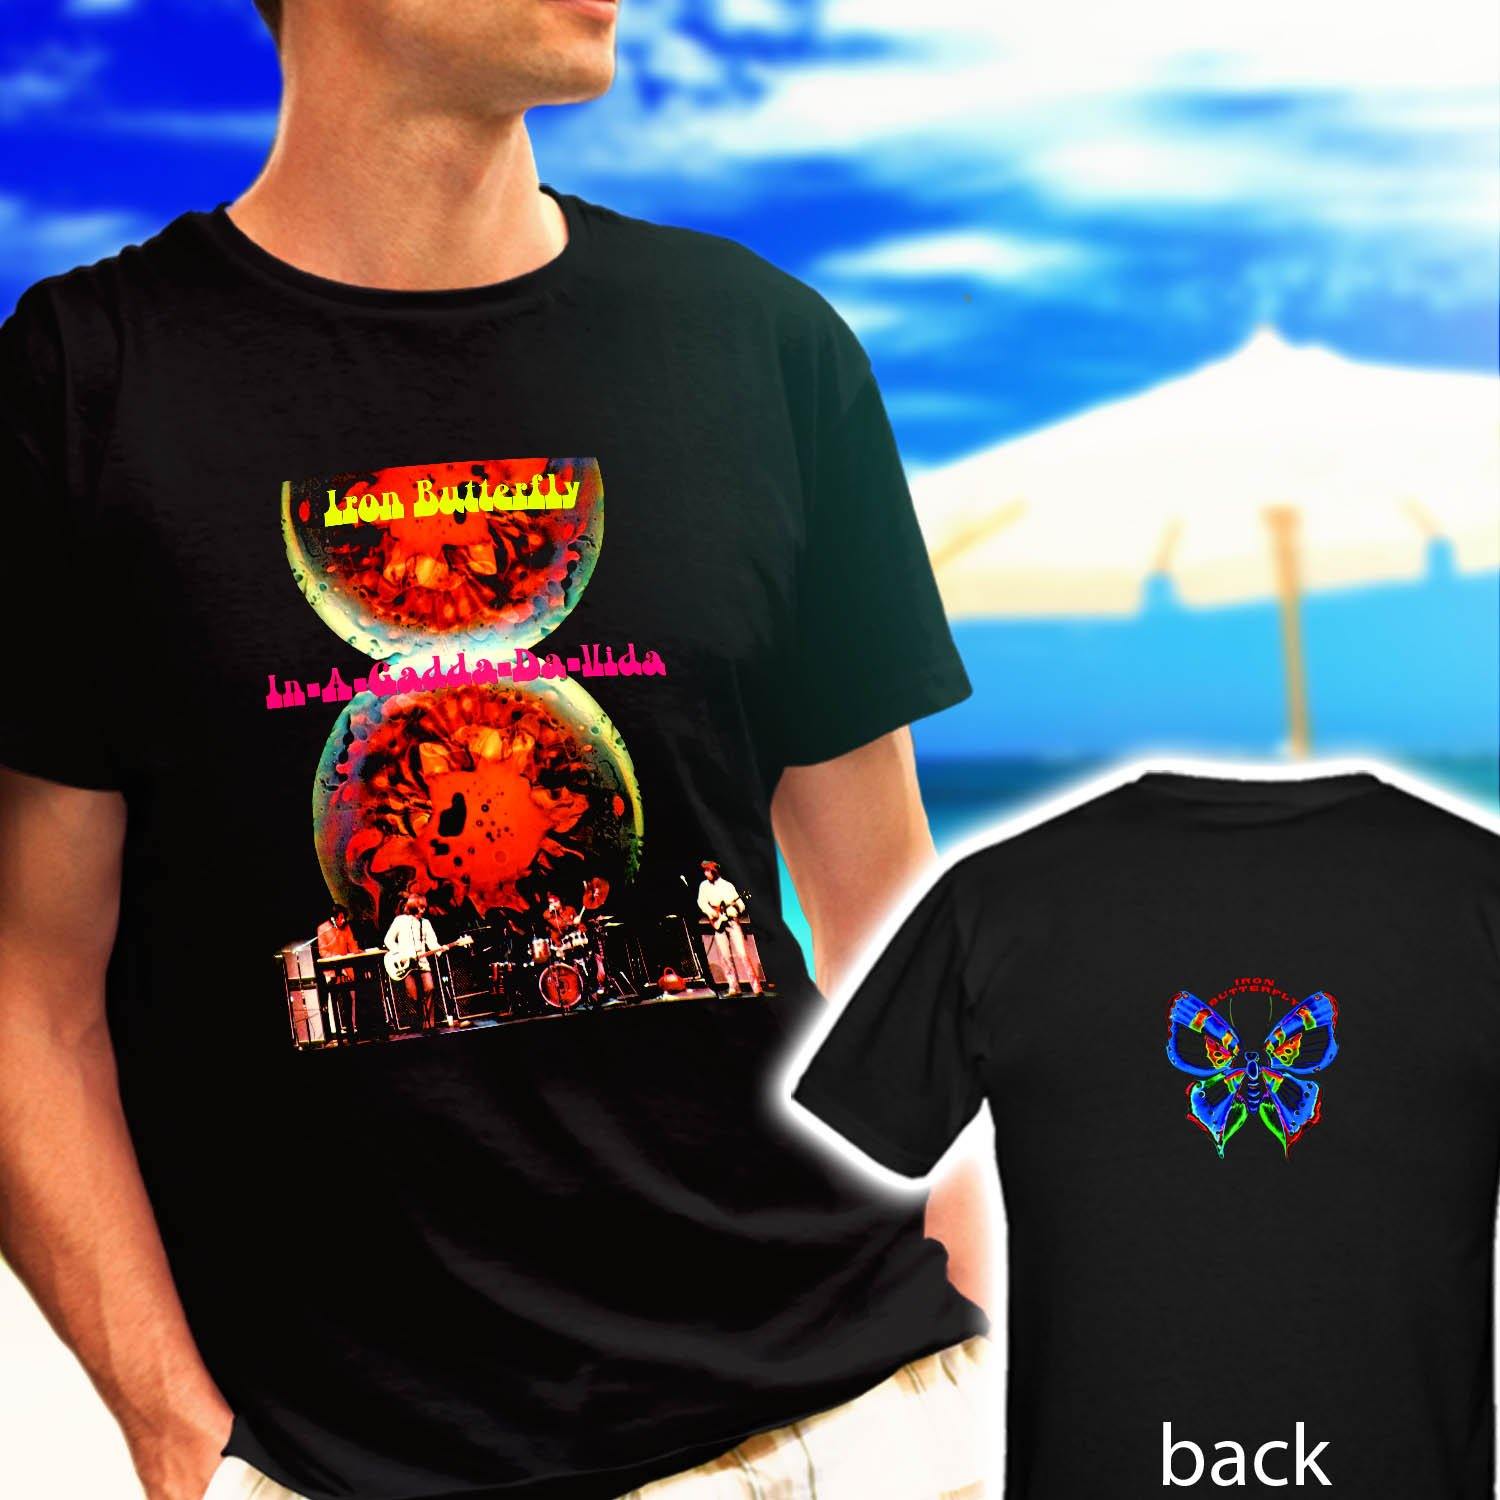 IRON BUTTERFLY In a gadda da vida black t-shirt tshirt shirts tee SIZE M